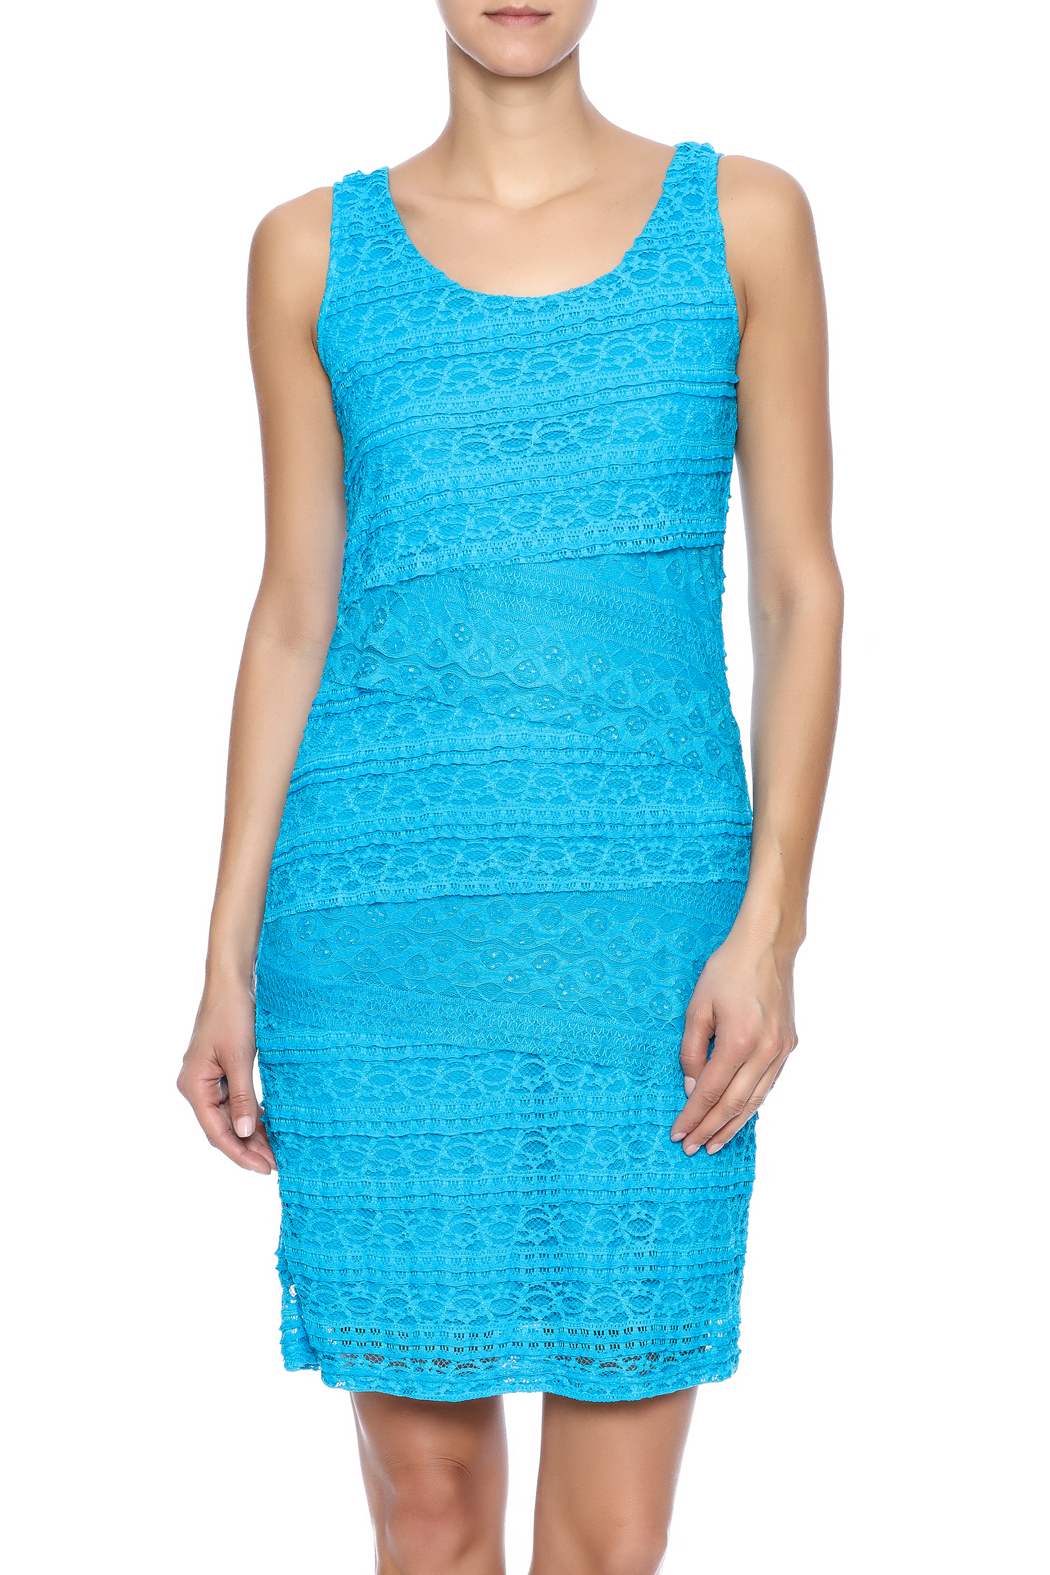 Michael Edwards Turquoise Lace Dress - Main Image